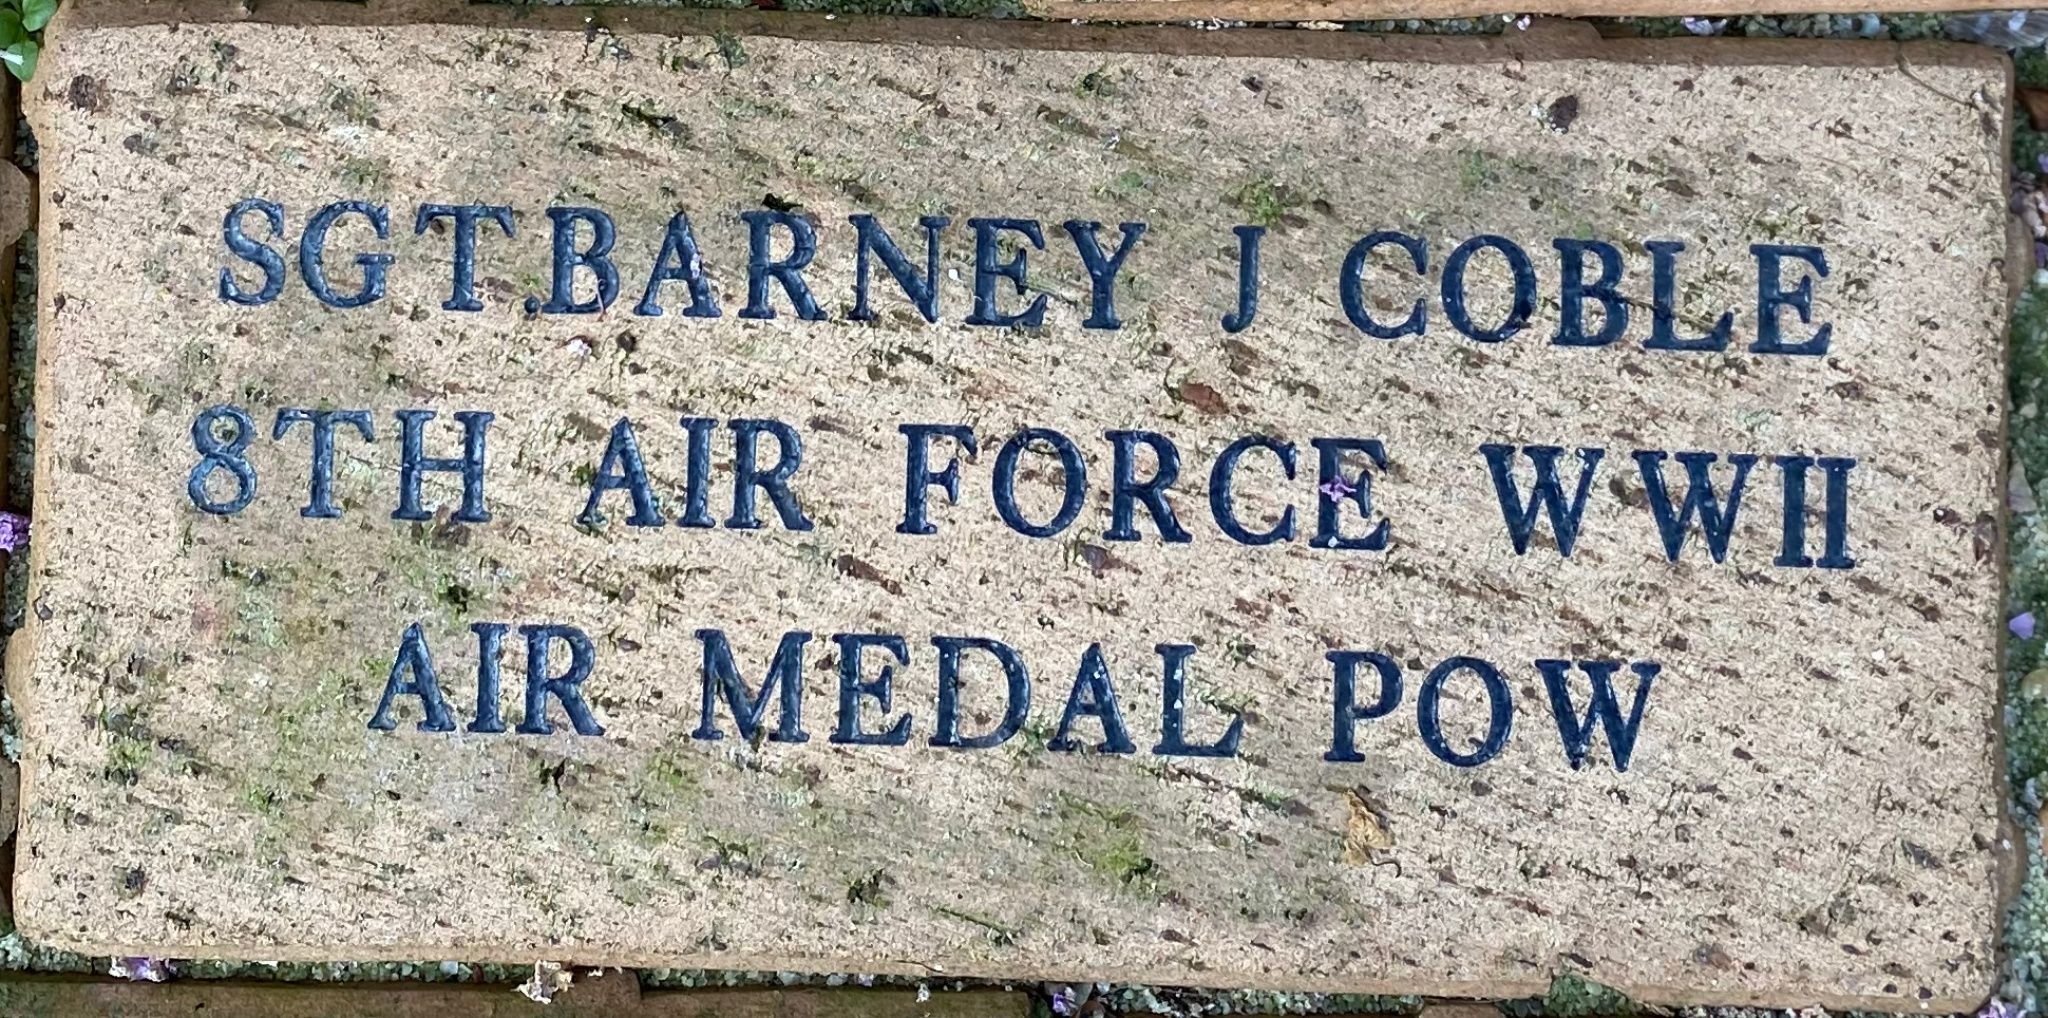 SGT.BARNEY J COBLE 8TH AIR FORCE WWII AIR MEDAL POW